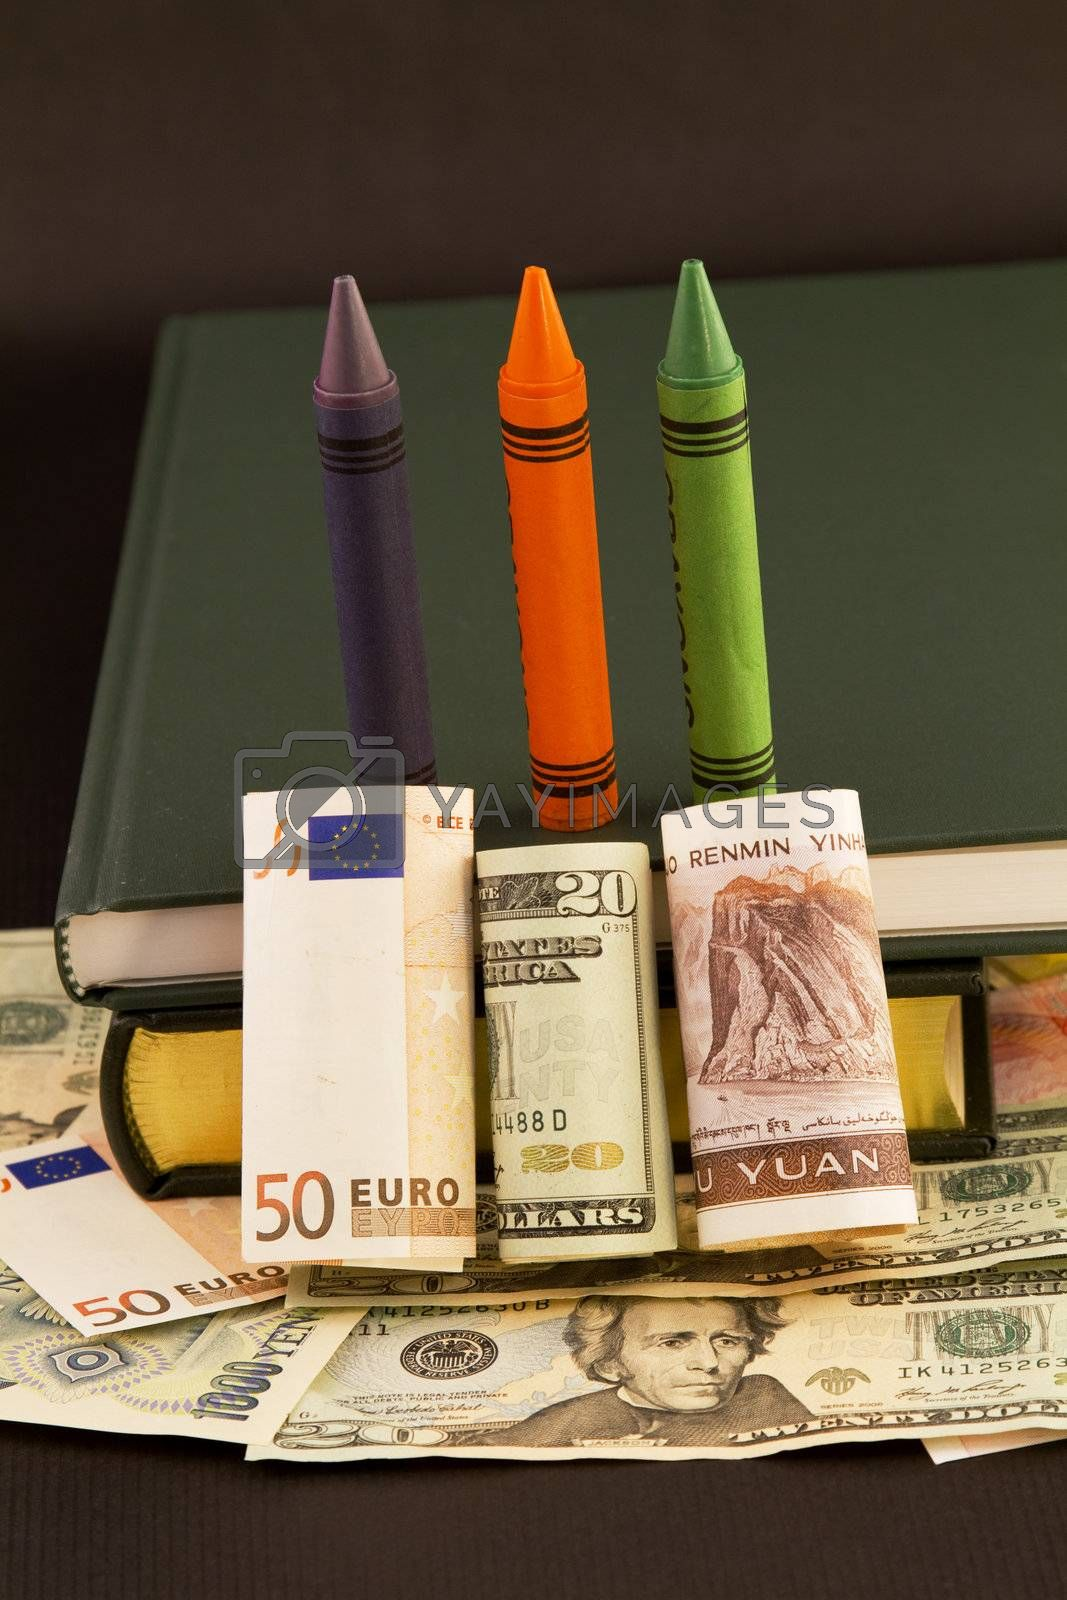 Global emphasis on education symbolized in crayons, books, and multiple currencies, dollar, euro, and yuan